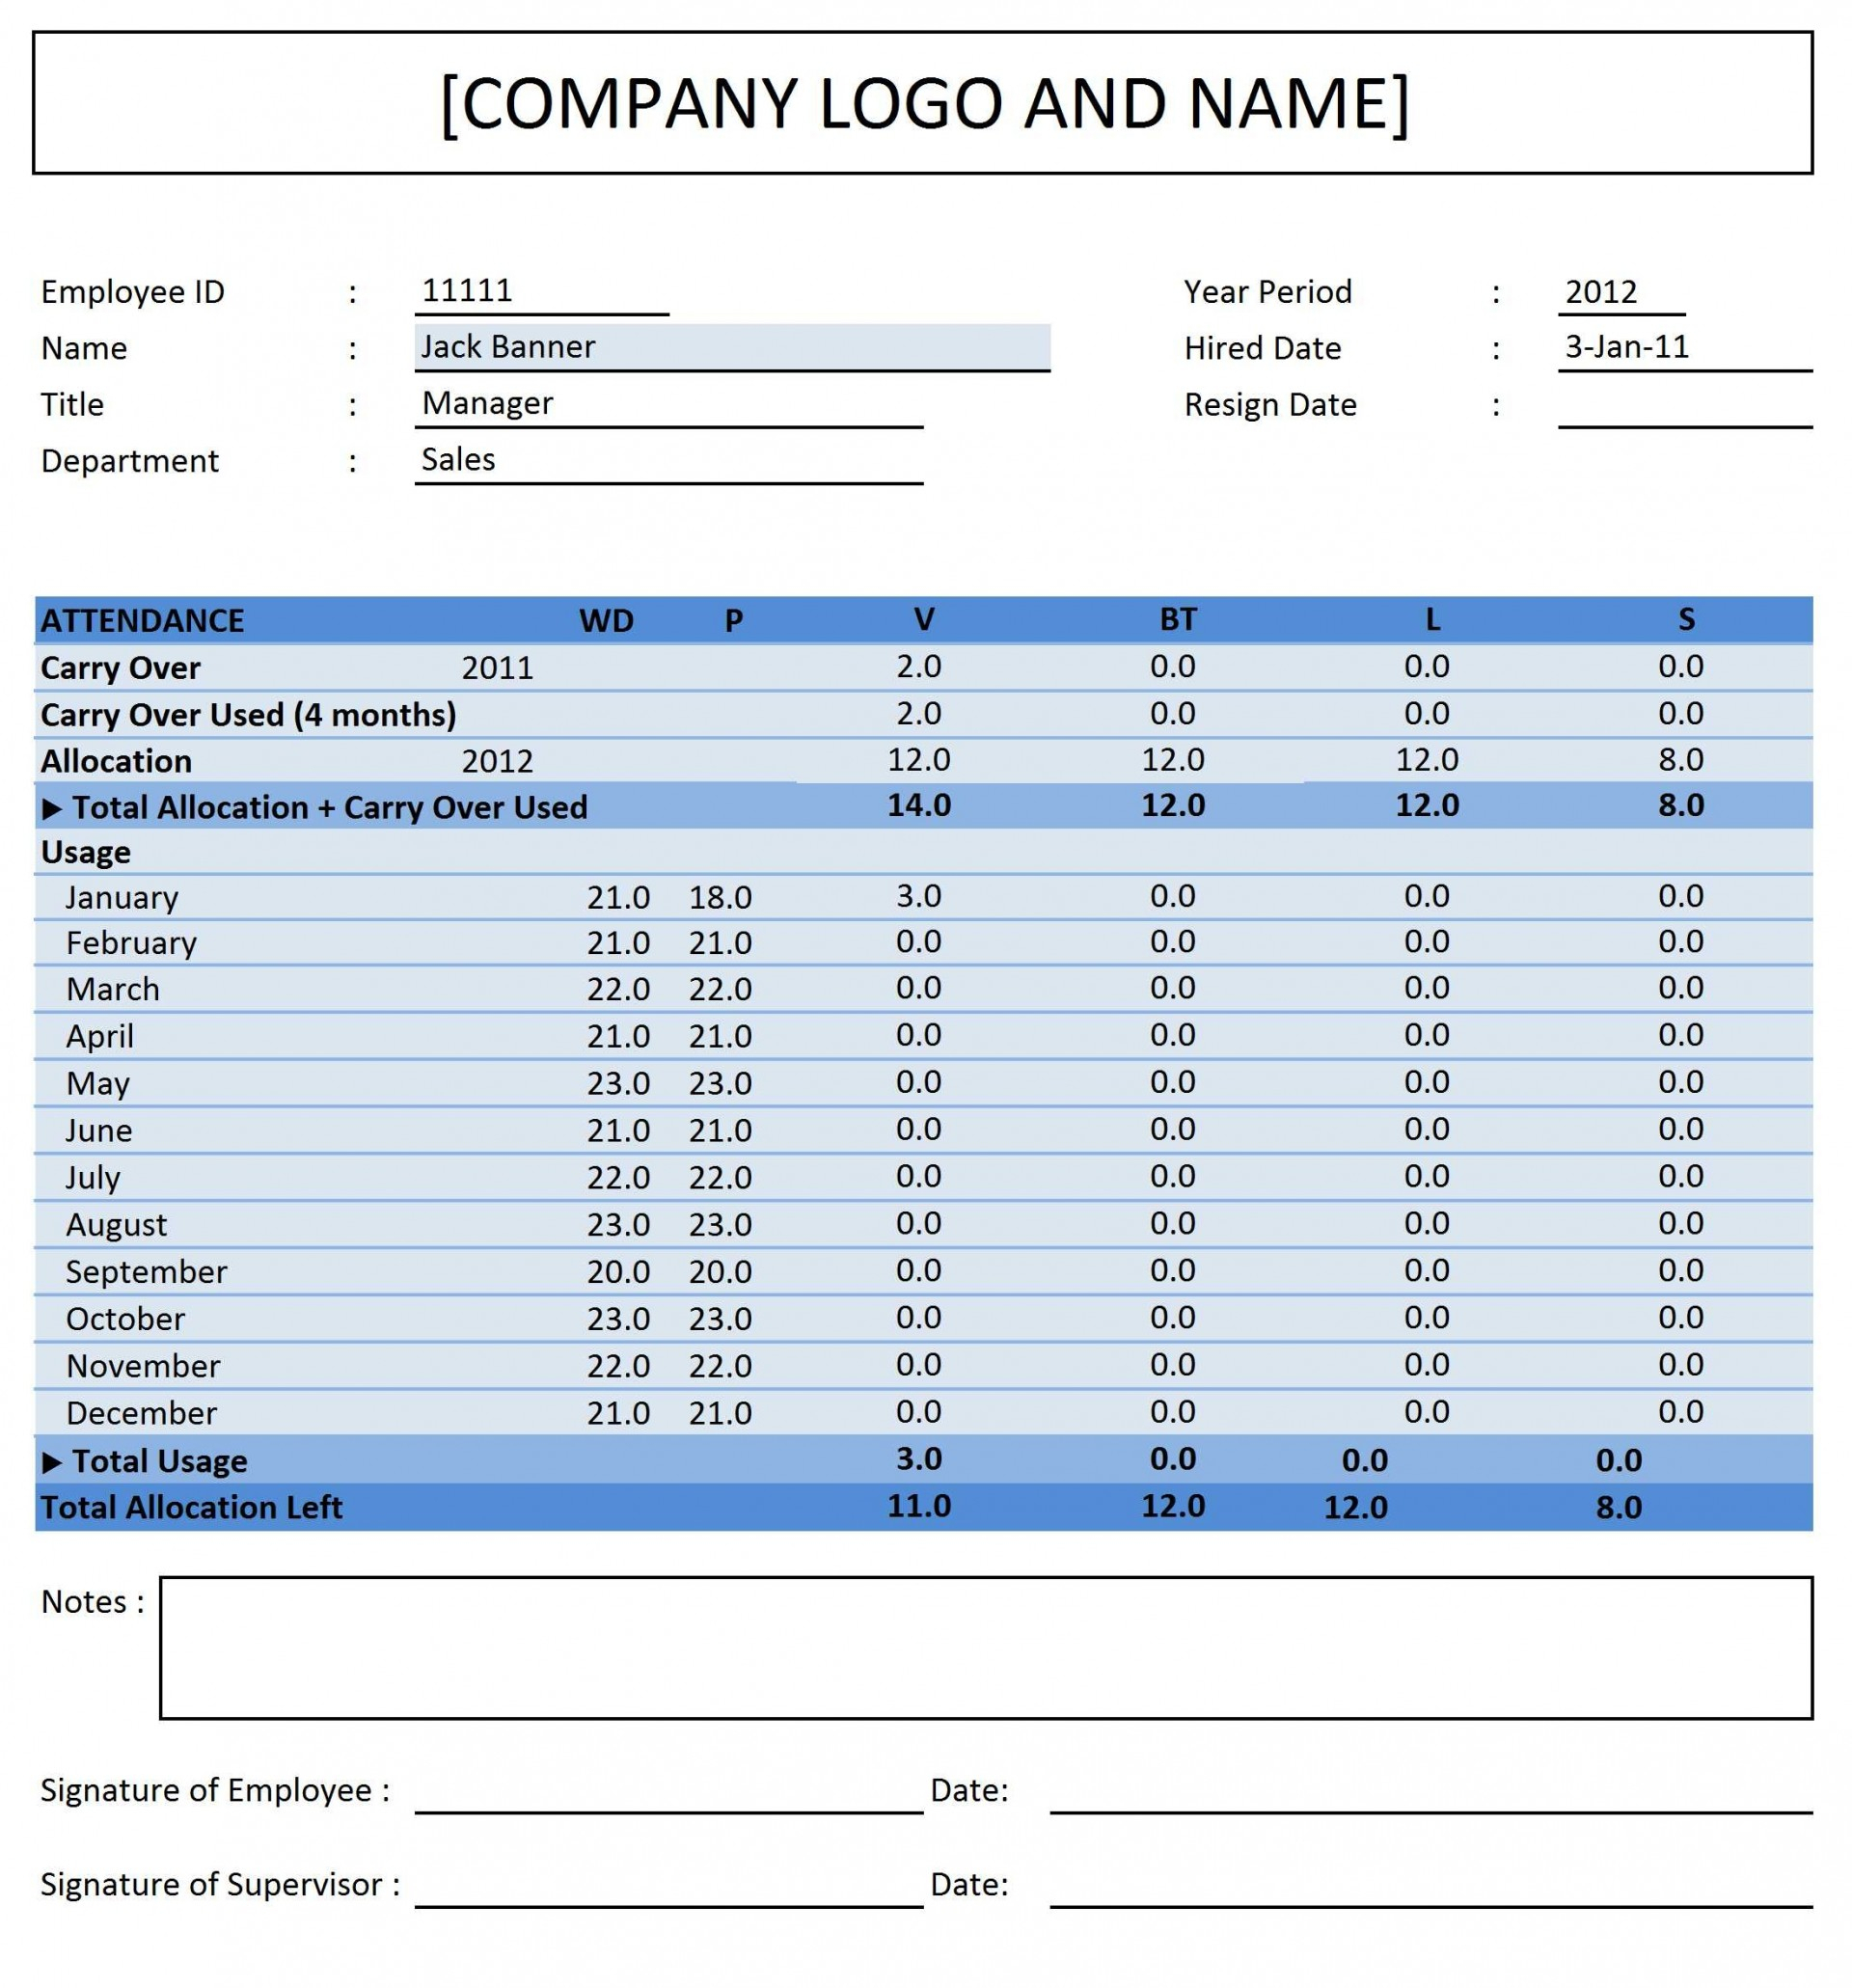 Staff Holiday Spreadsheet For 023 Template Ideas Employee Vacation Planner Accrual Spreadsheet